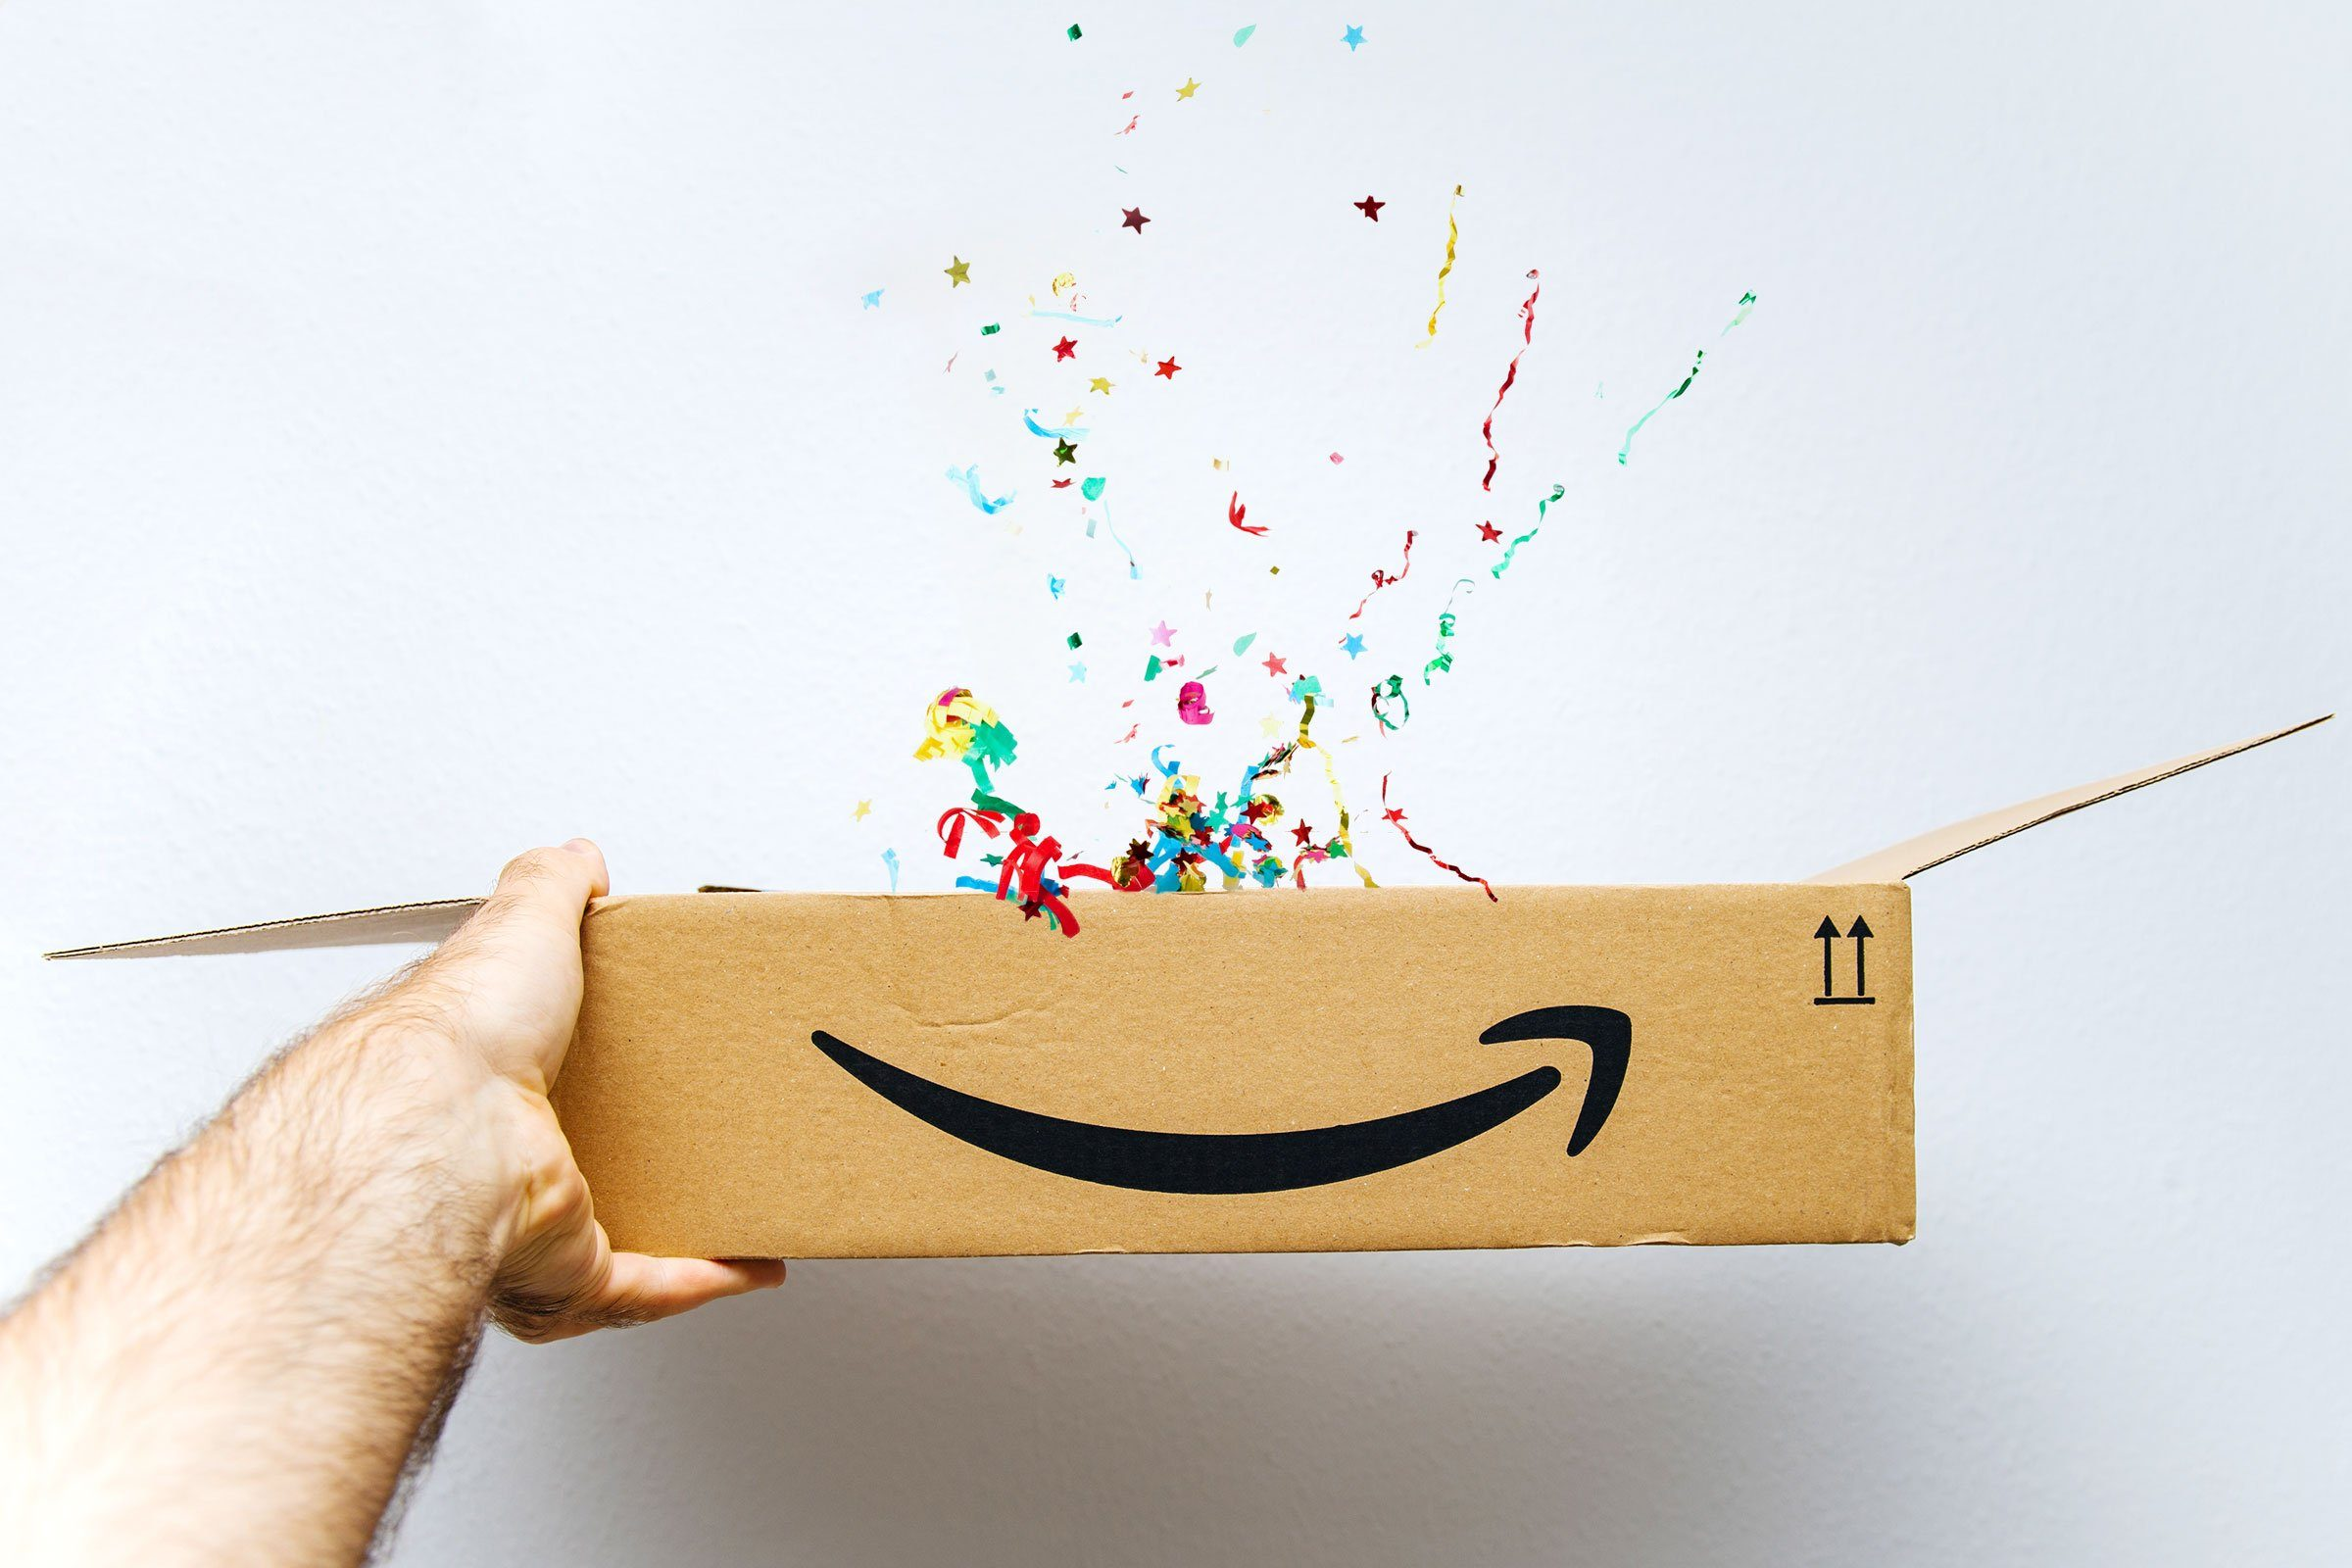 confetti popping out of an amazon box